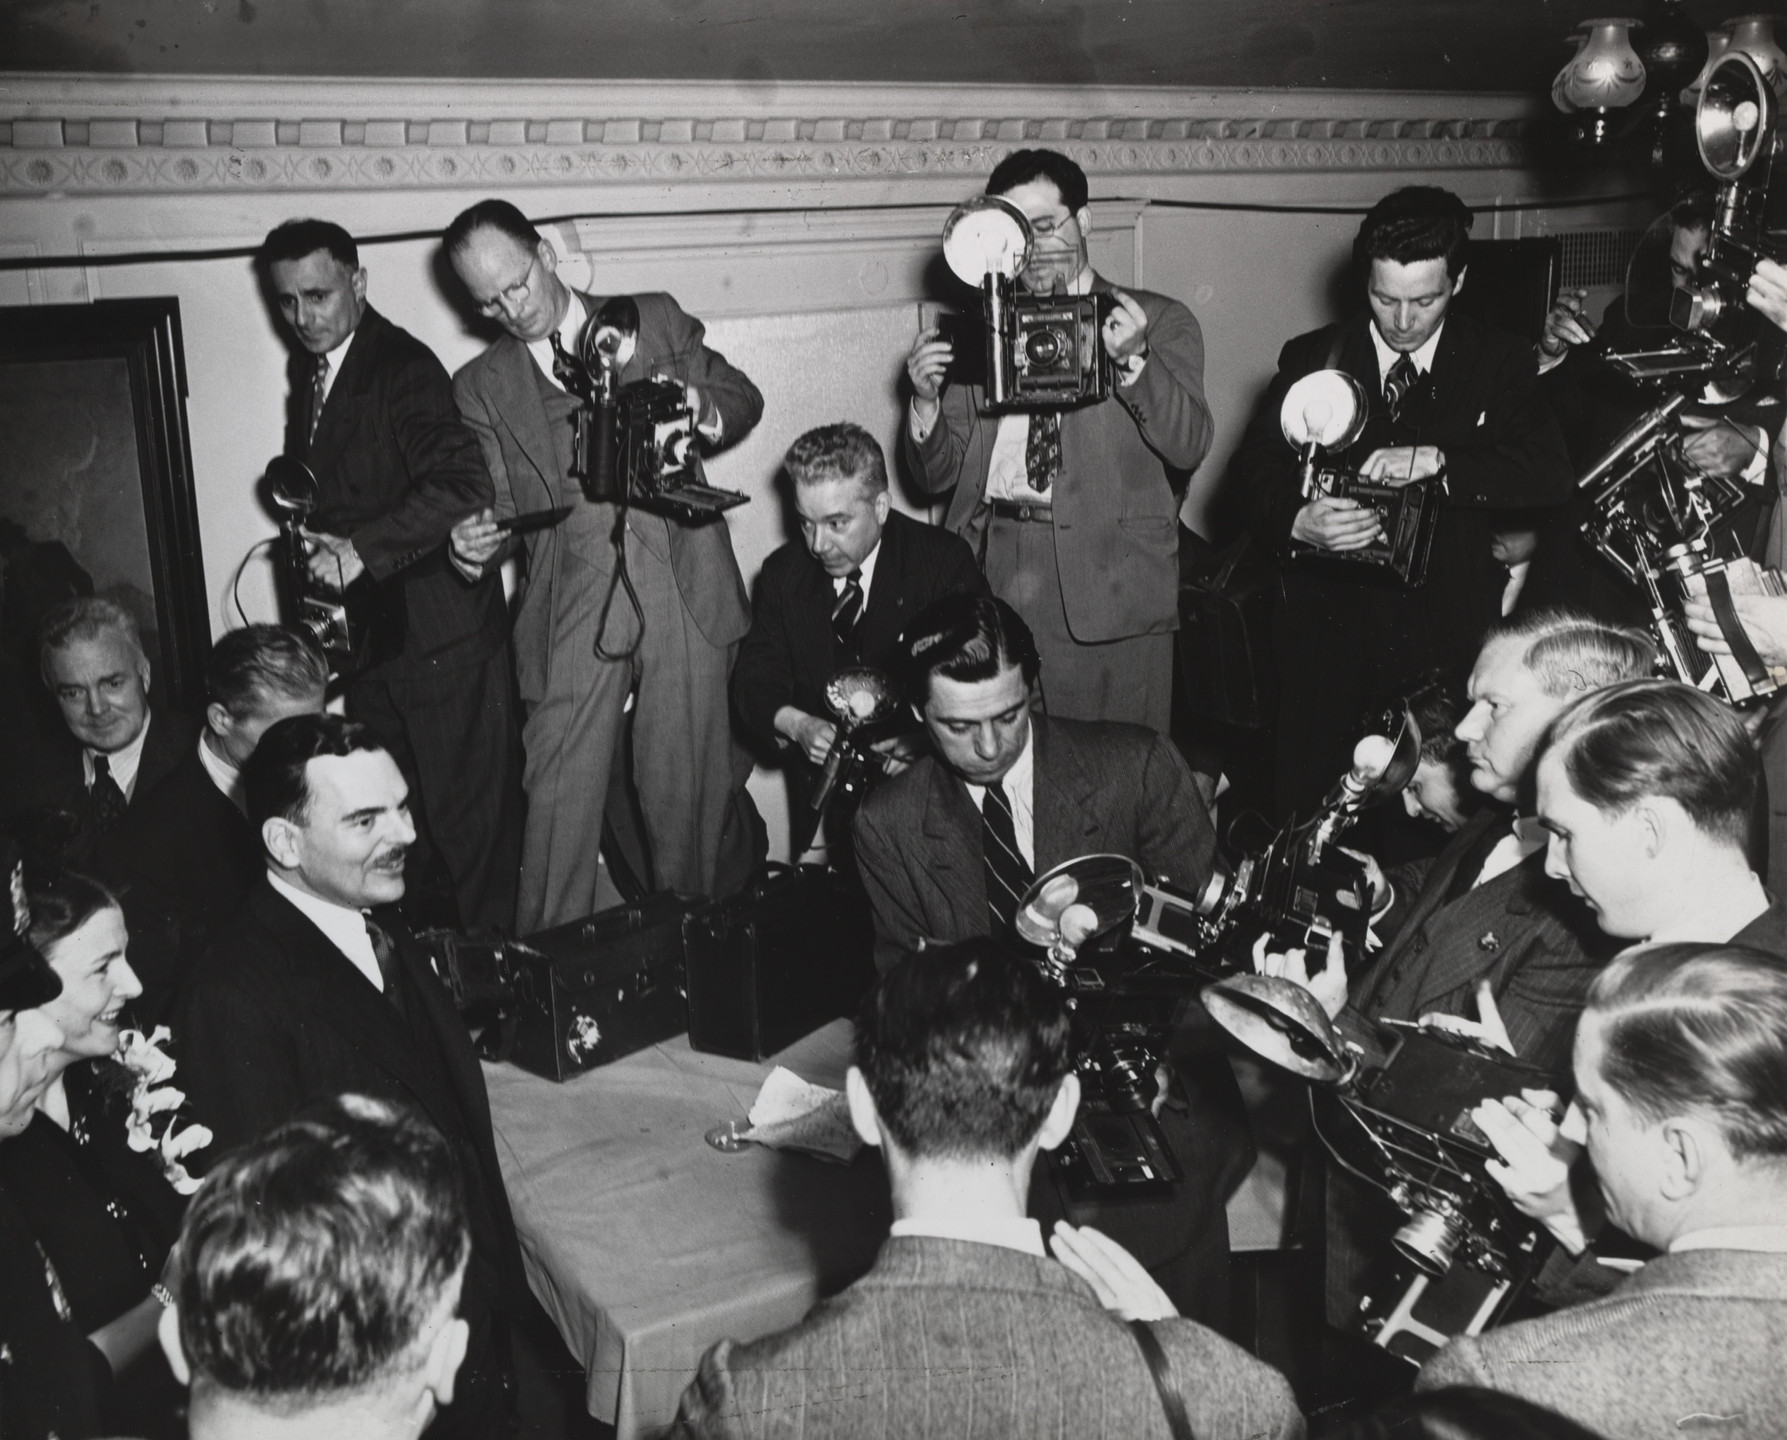 Weegee (Arthur Fellig). Thomas E. Dewey and Photographers. 1942